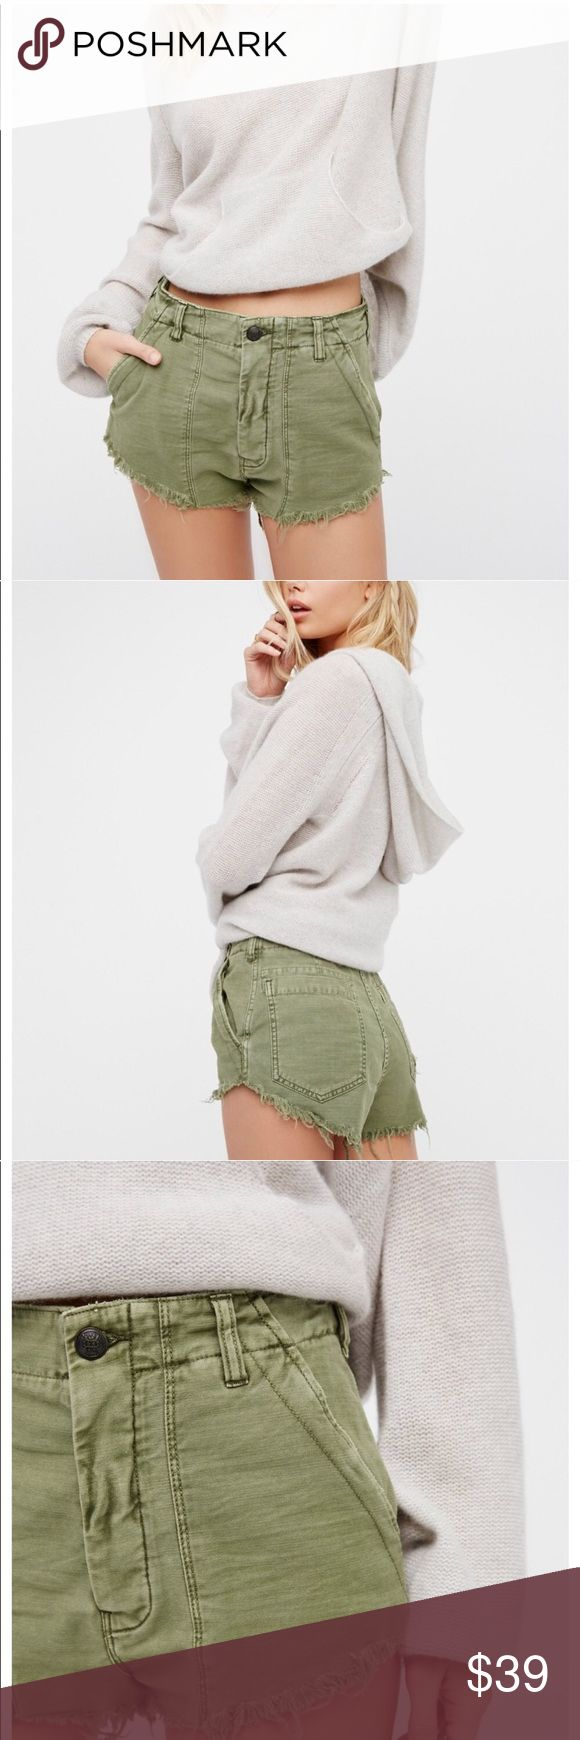 Free People High Waisted Cutoff Raw Army Shorts Free People High Waisted Cutoff Raw Shorts. Army/Moss Green color. Button fly, raw cut off edges. Super sexy fit! Never worn! From FP summer 2017. Size 0, fits true to size. Free People Shorts